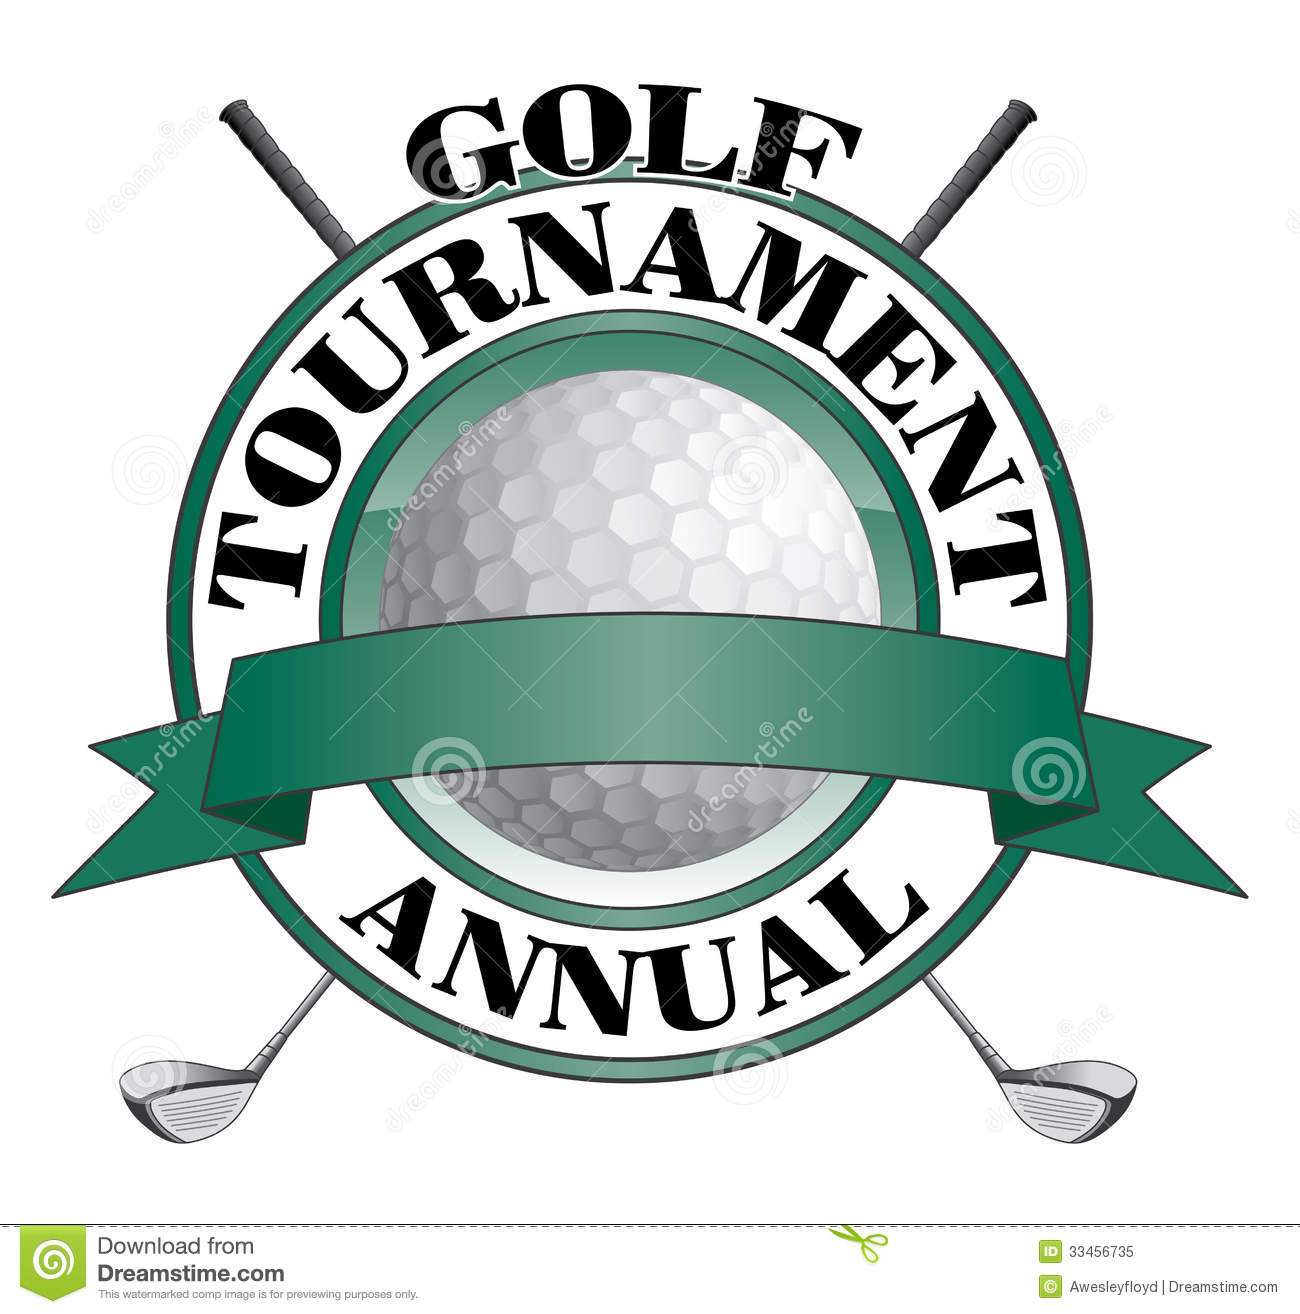 Of An Annual Golf Tournament Design  Contains Golf Clubs And Golf